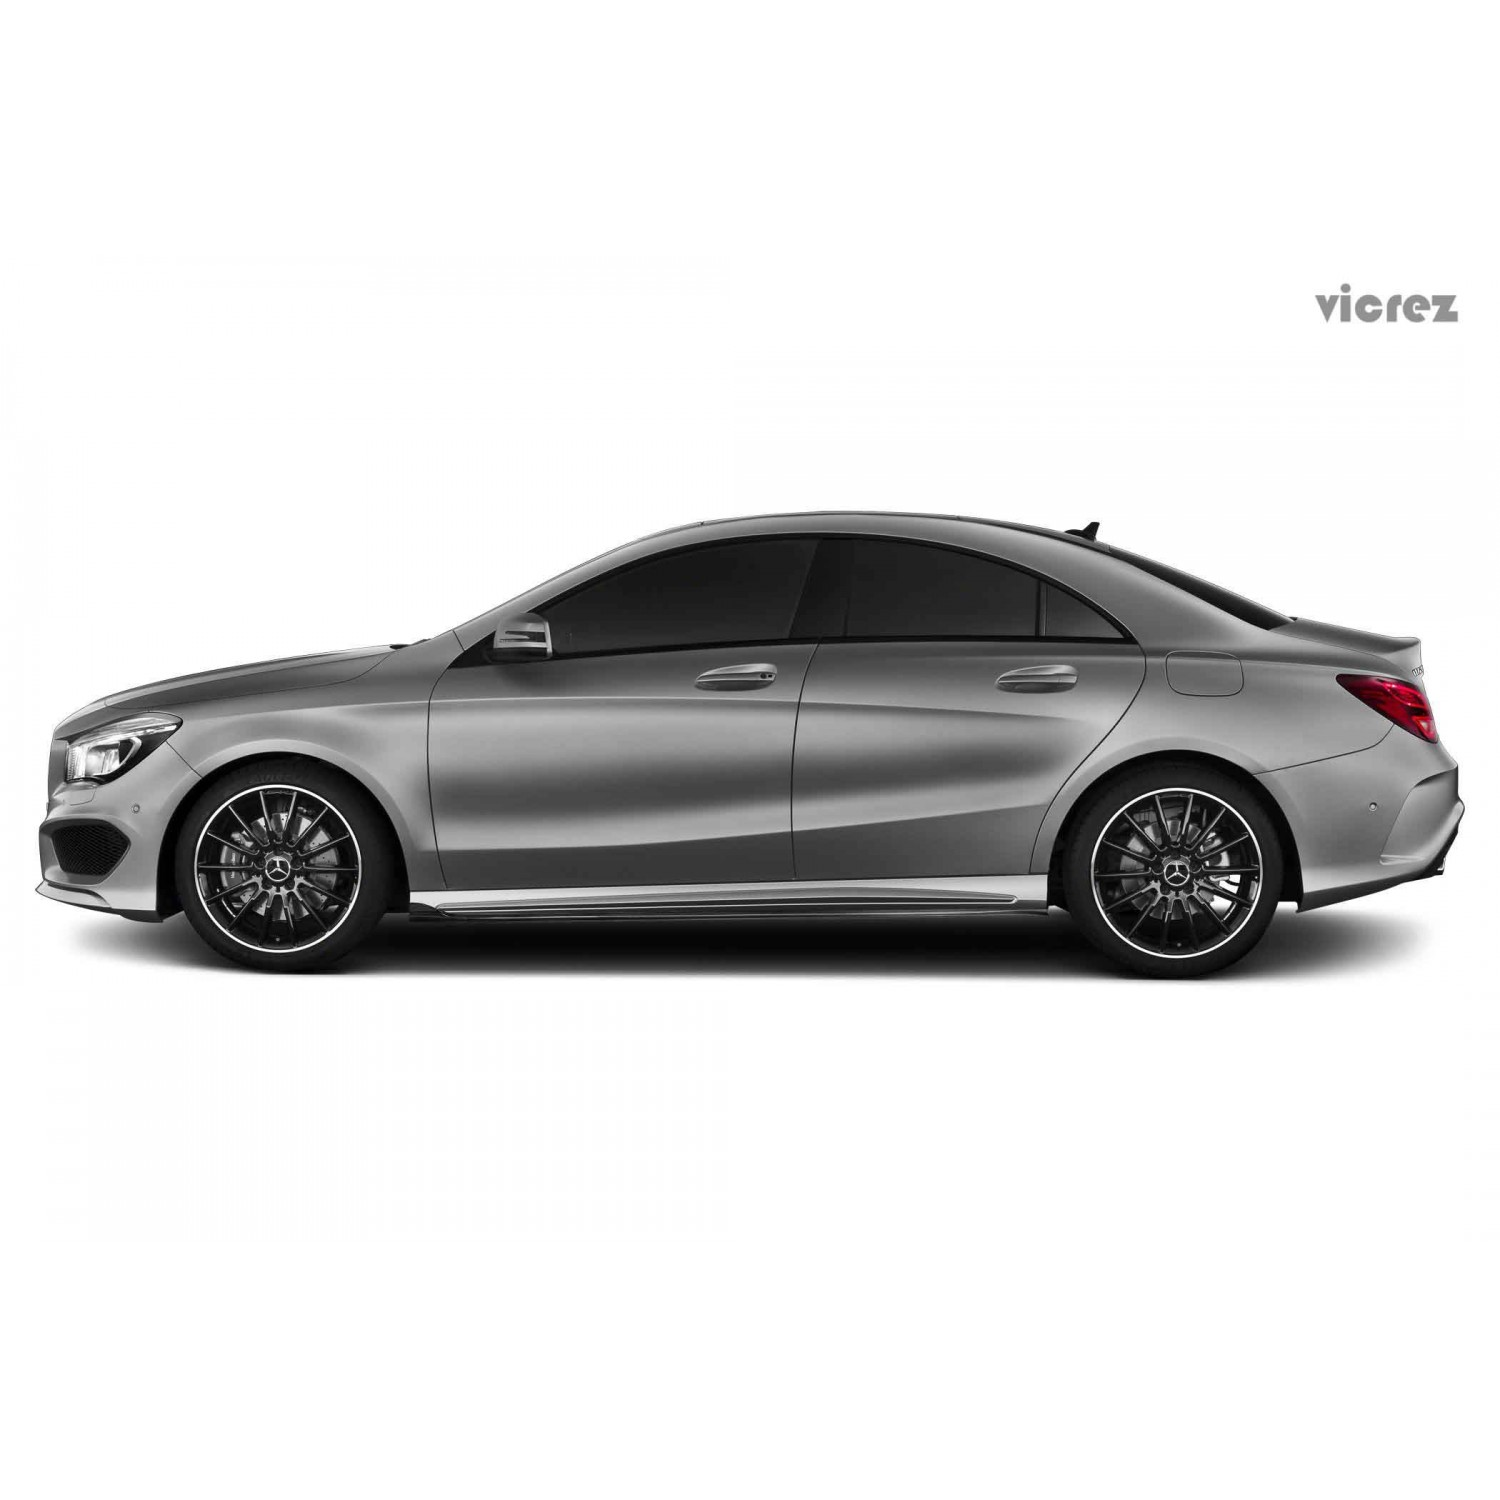 vicrez mercedes benz cla class sport 2014 2016 carbon fiber side skirts vz100539. Black Bedroom Furniture Sets. Home Design Ideas